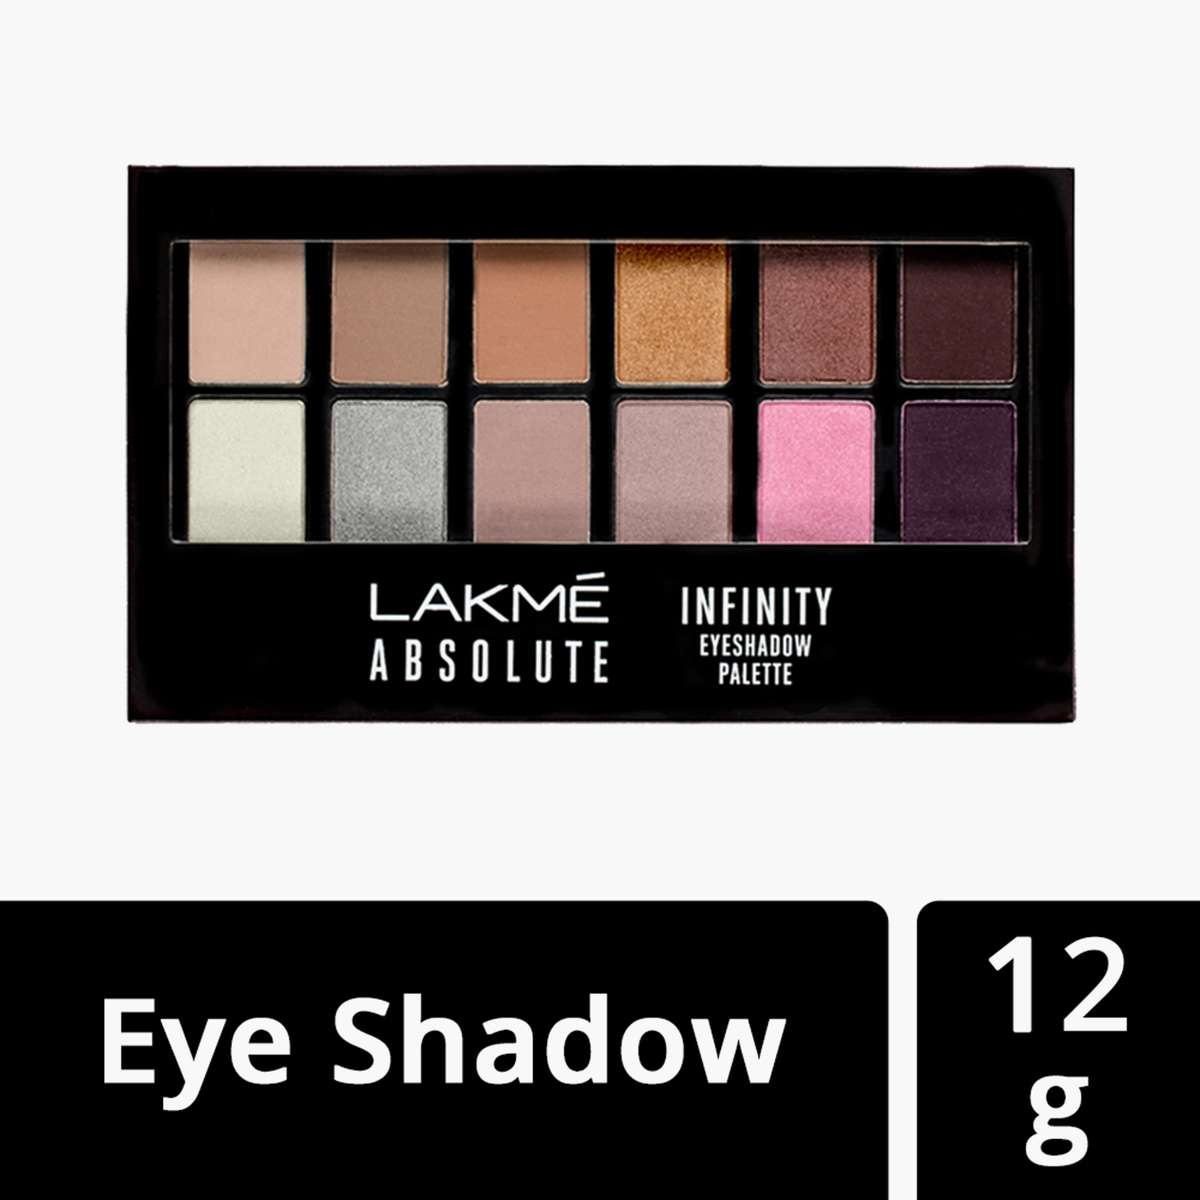 Lakme Absoulte Infinity Eyeshadow Palette 12g